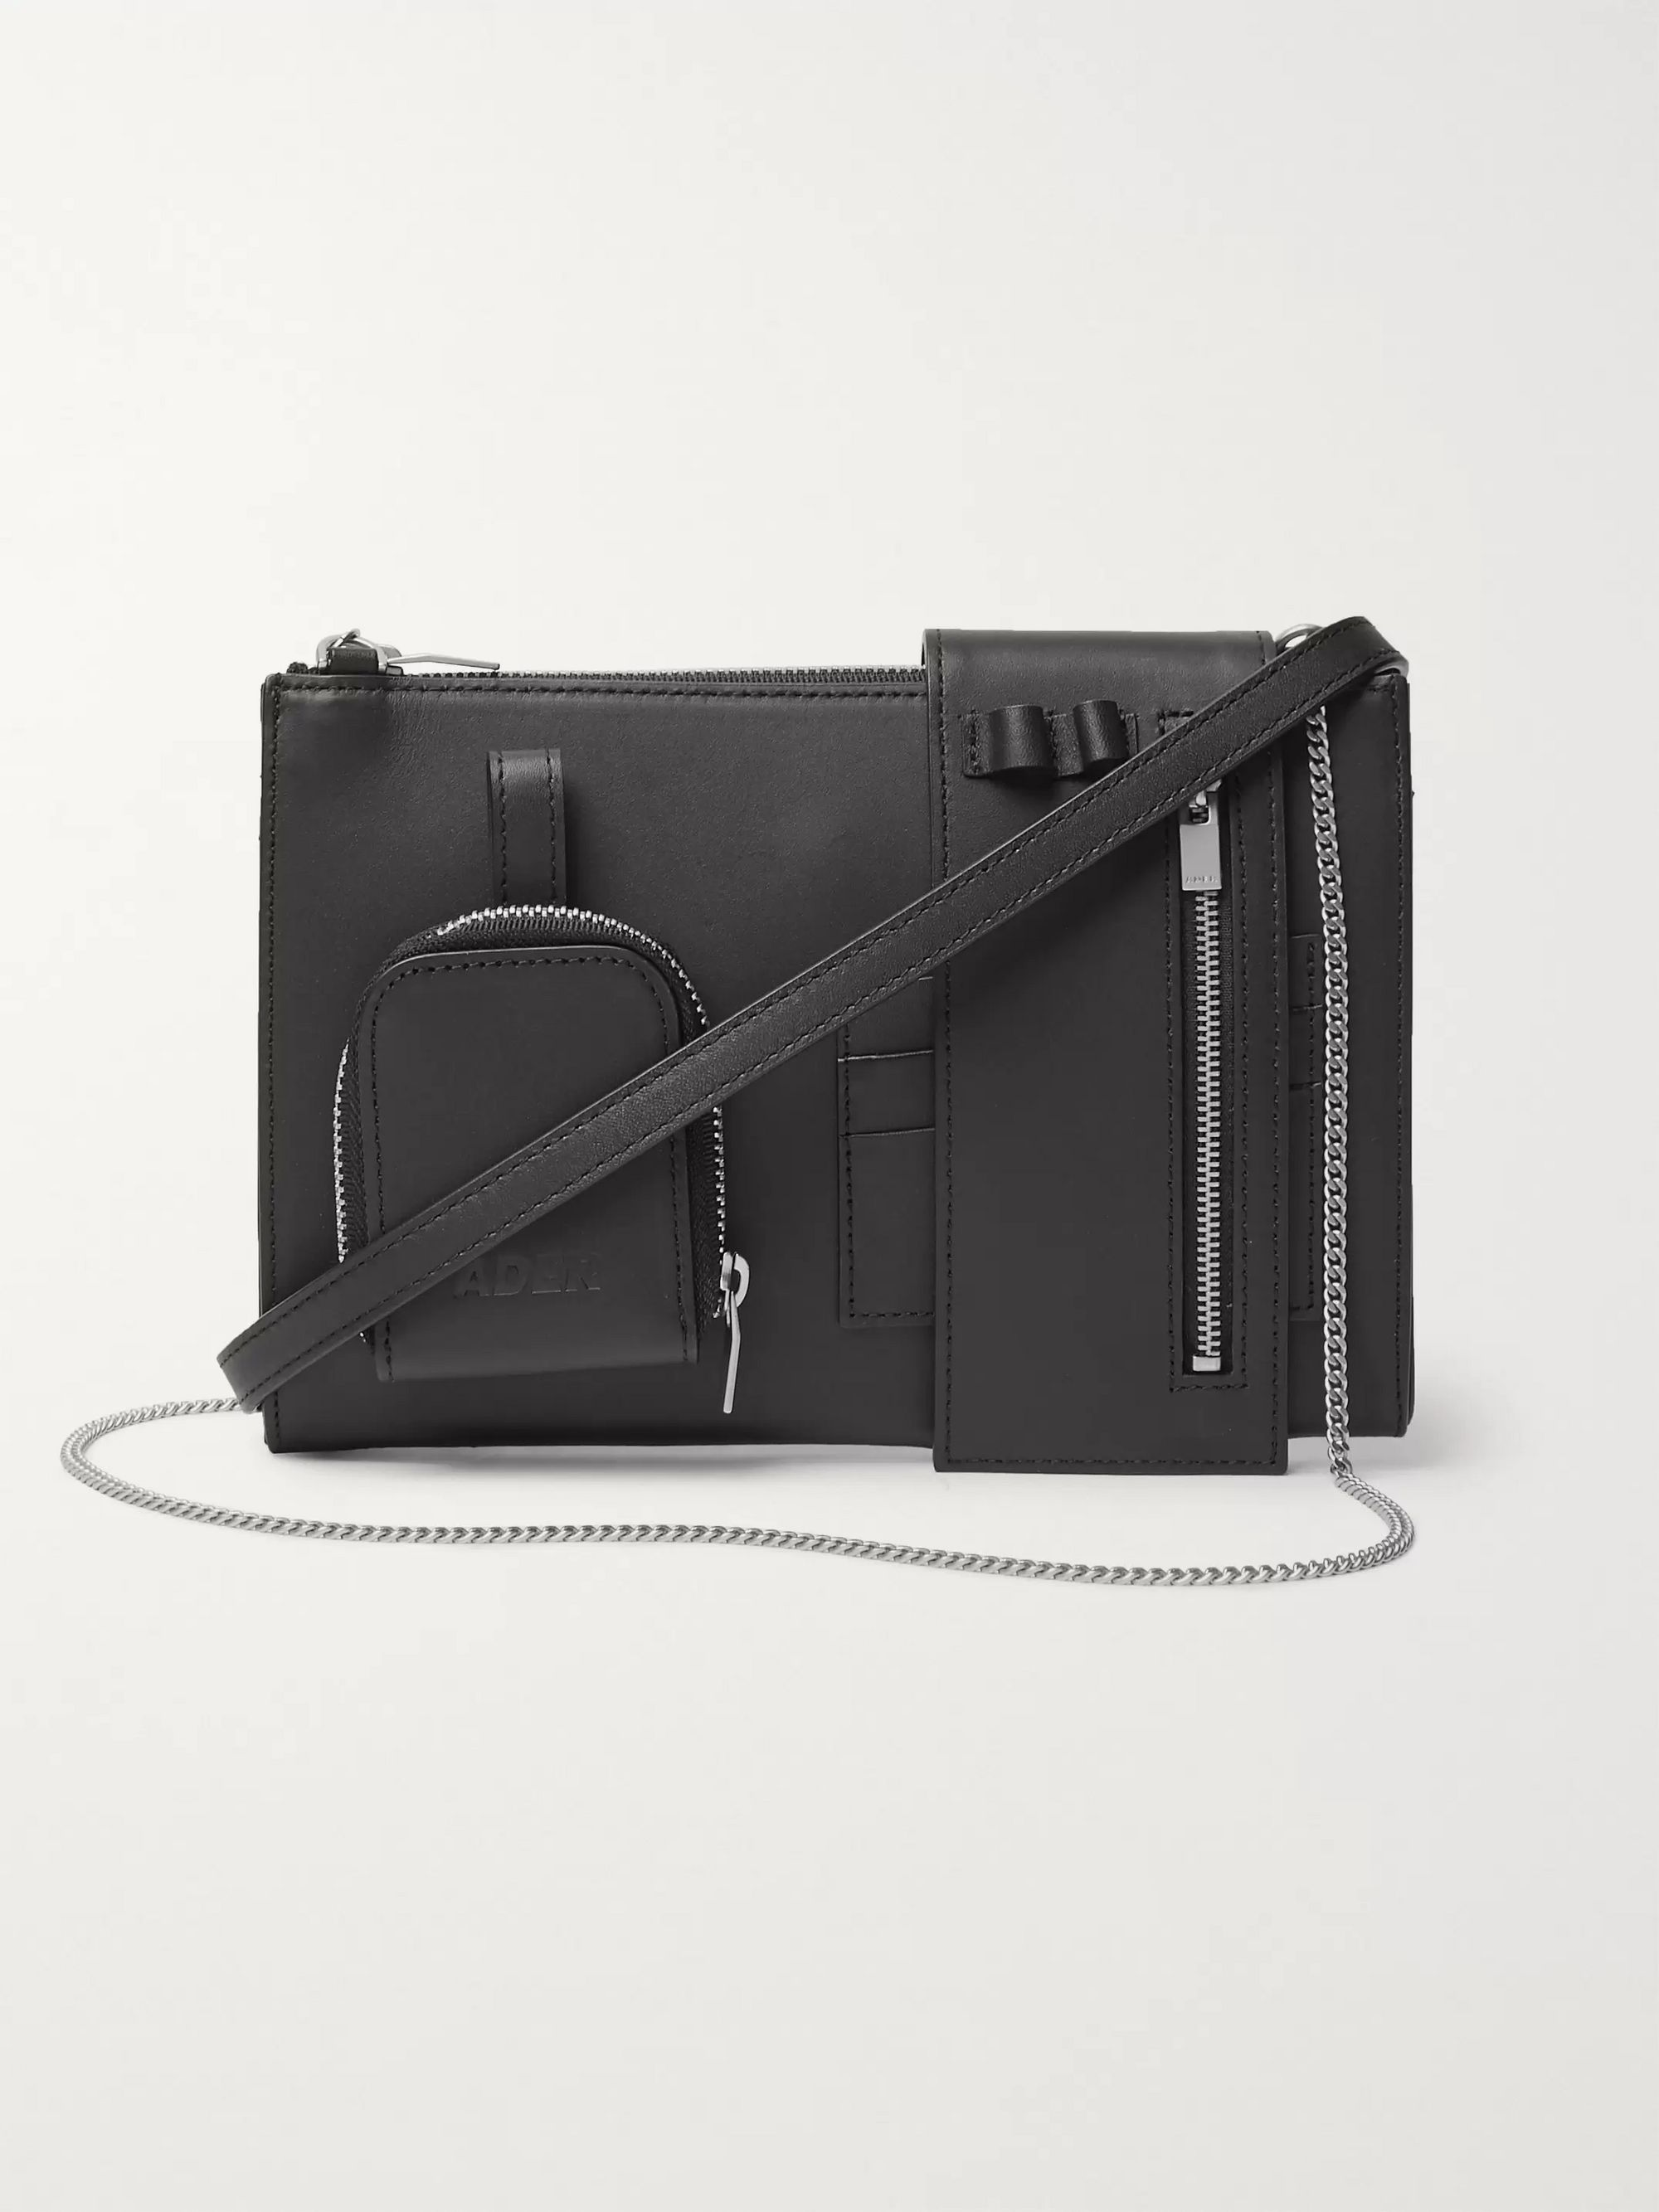 Ader Error Tetristype Leather Messenger Bag